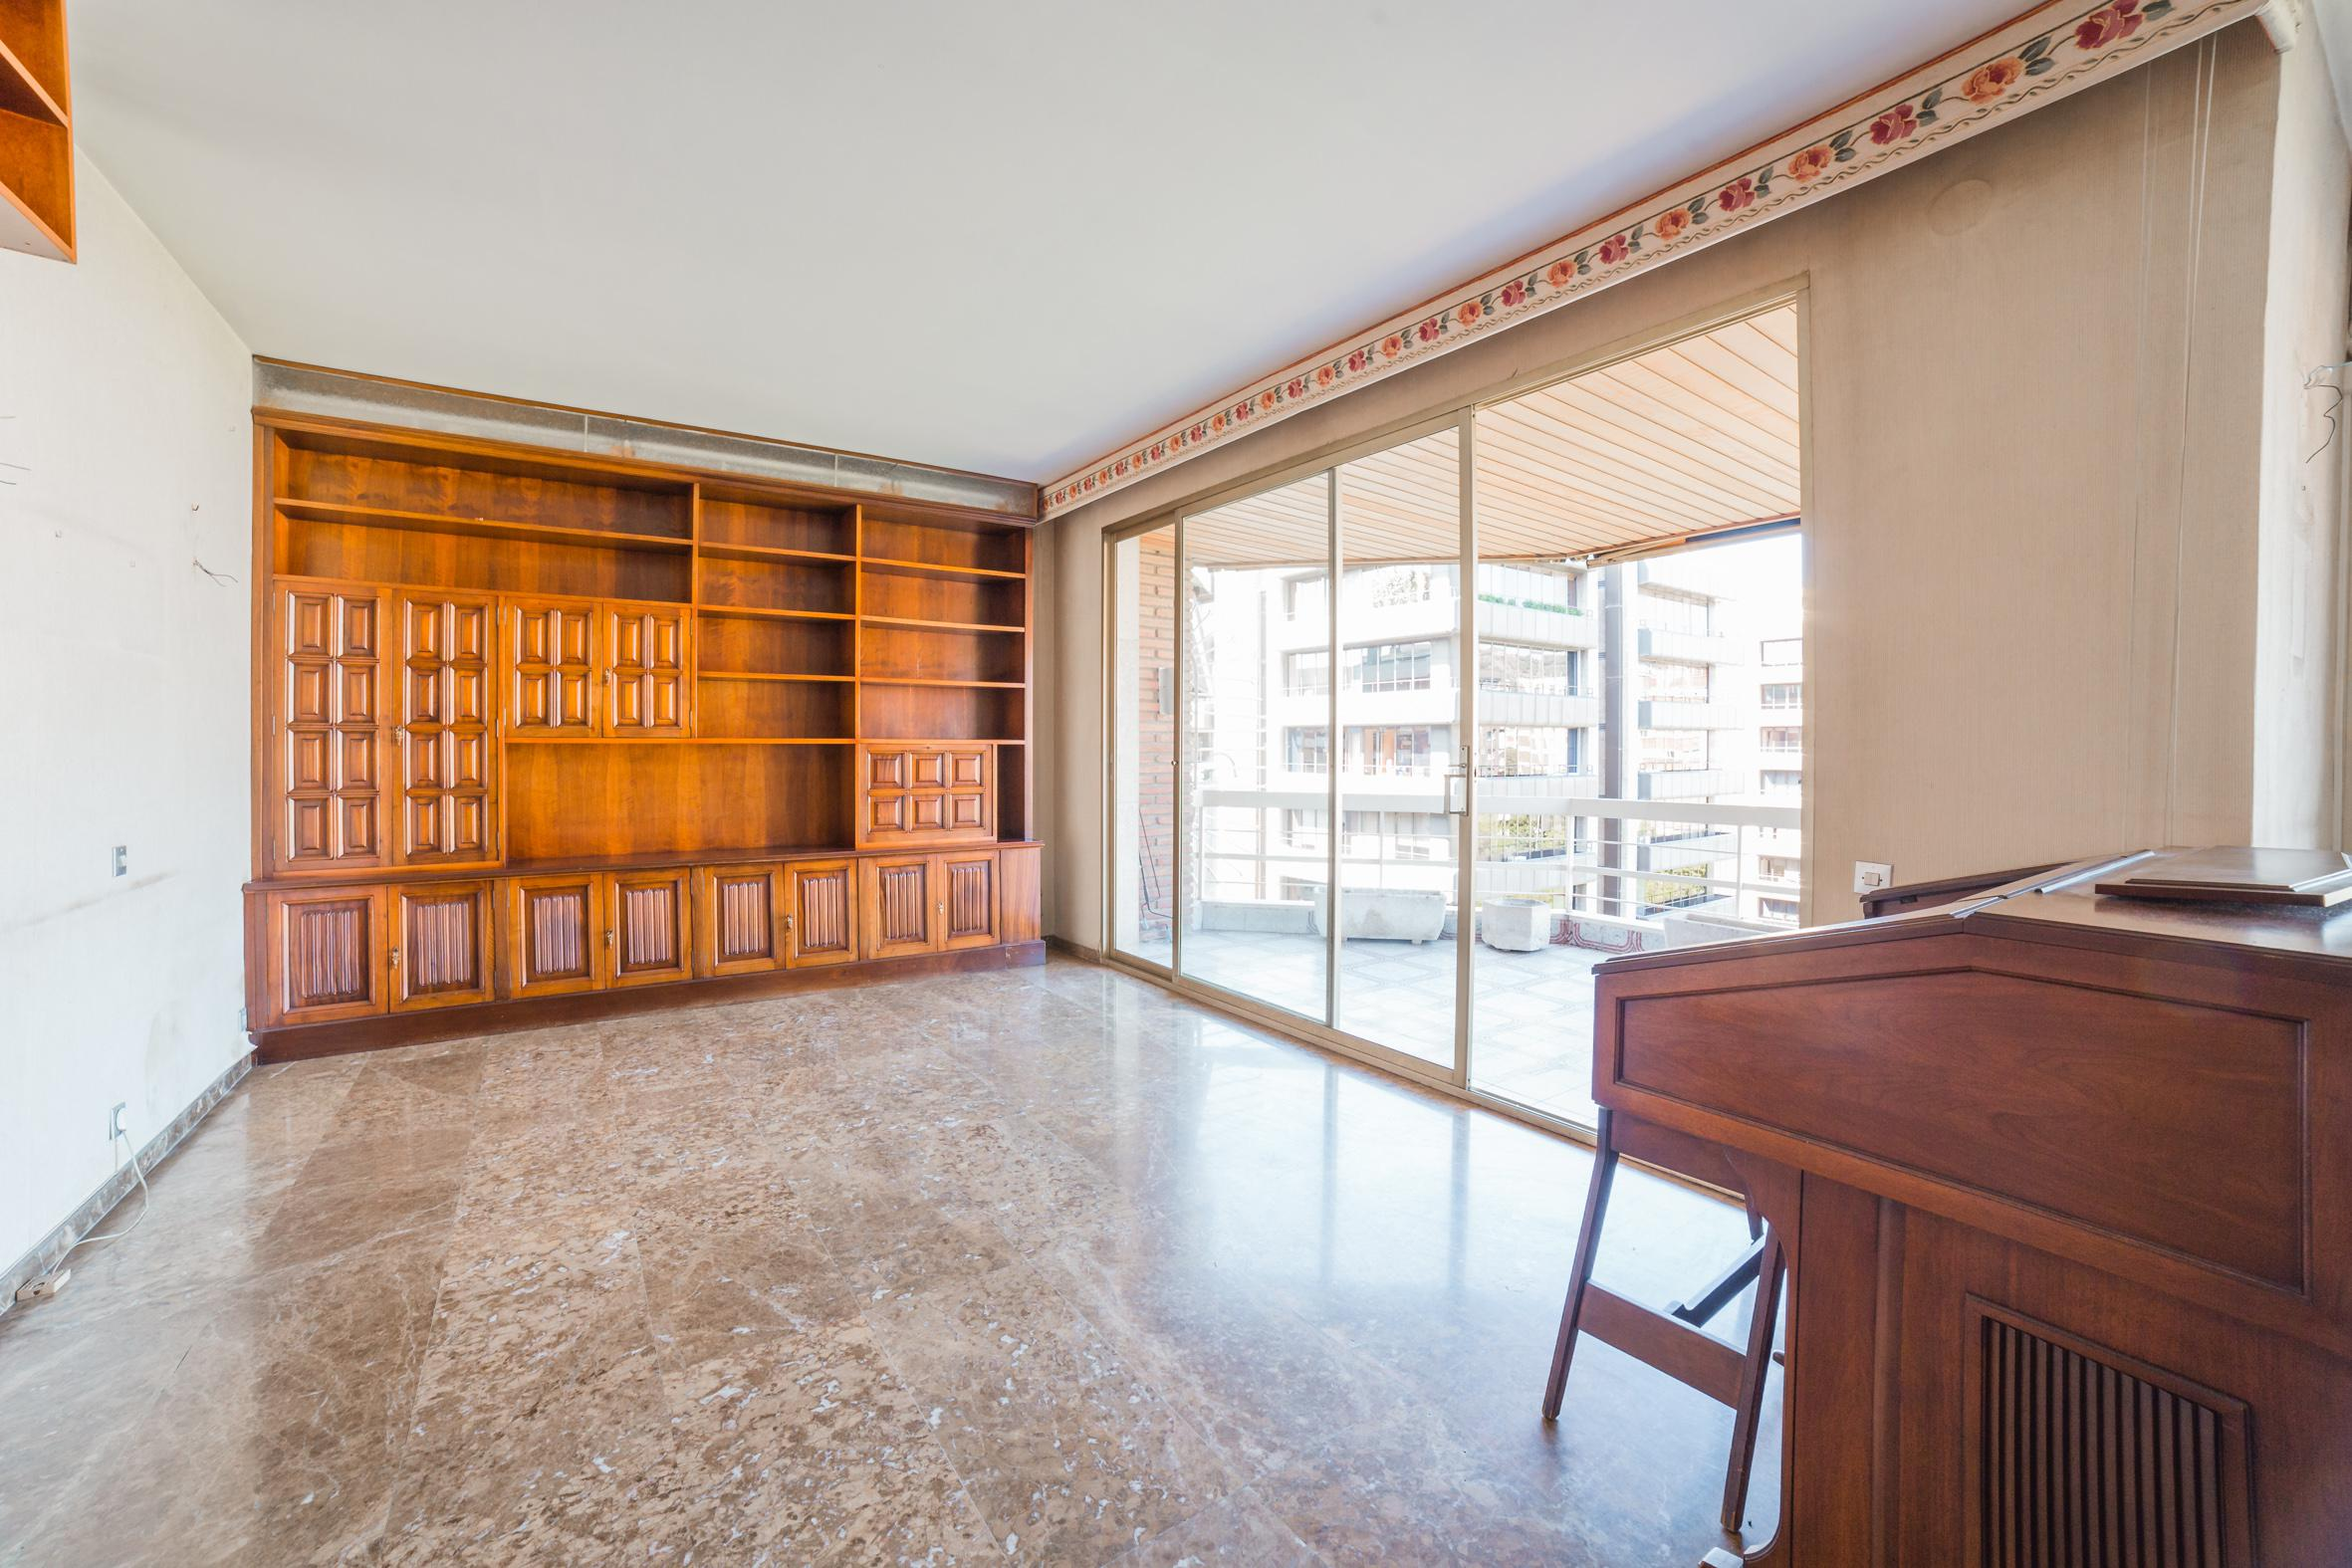 248988 Flat for sale in Les Corts, Les Corts 3